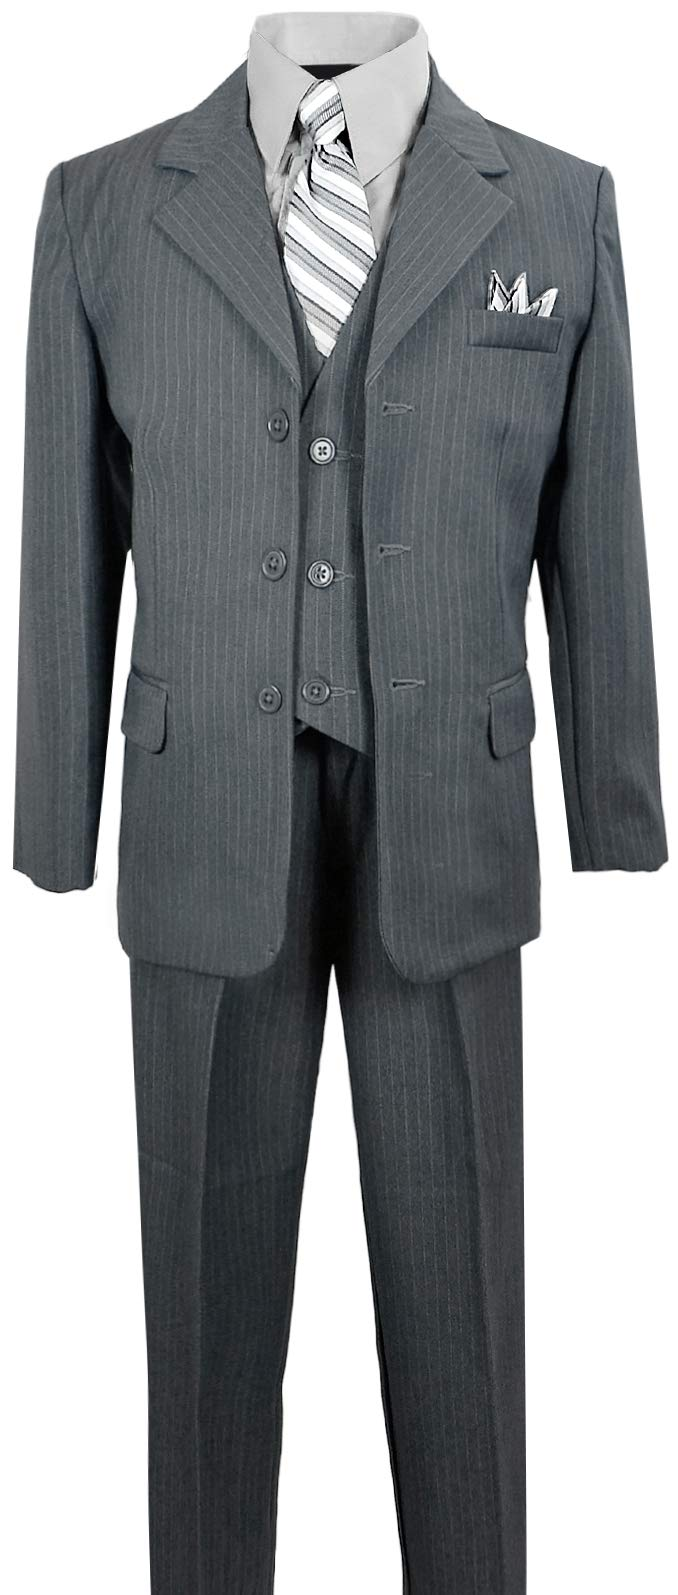 Boys Pinstripe Suit in Grey with Matching Tie Size 8